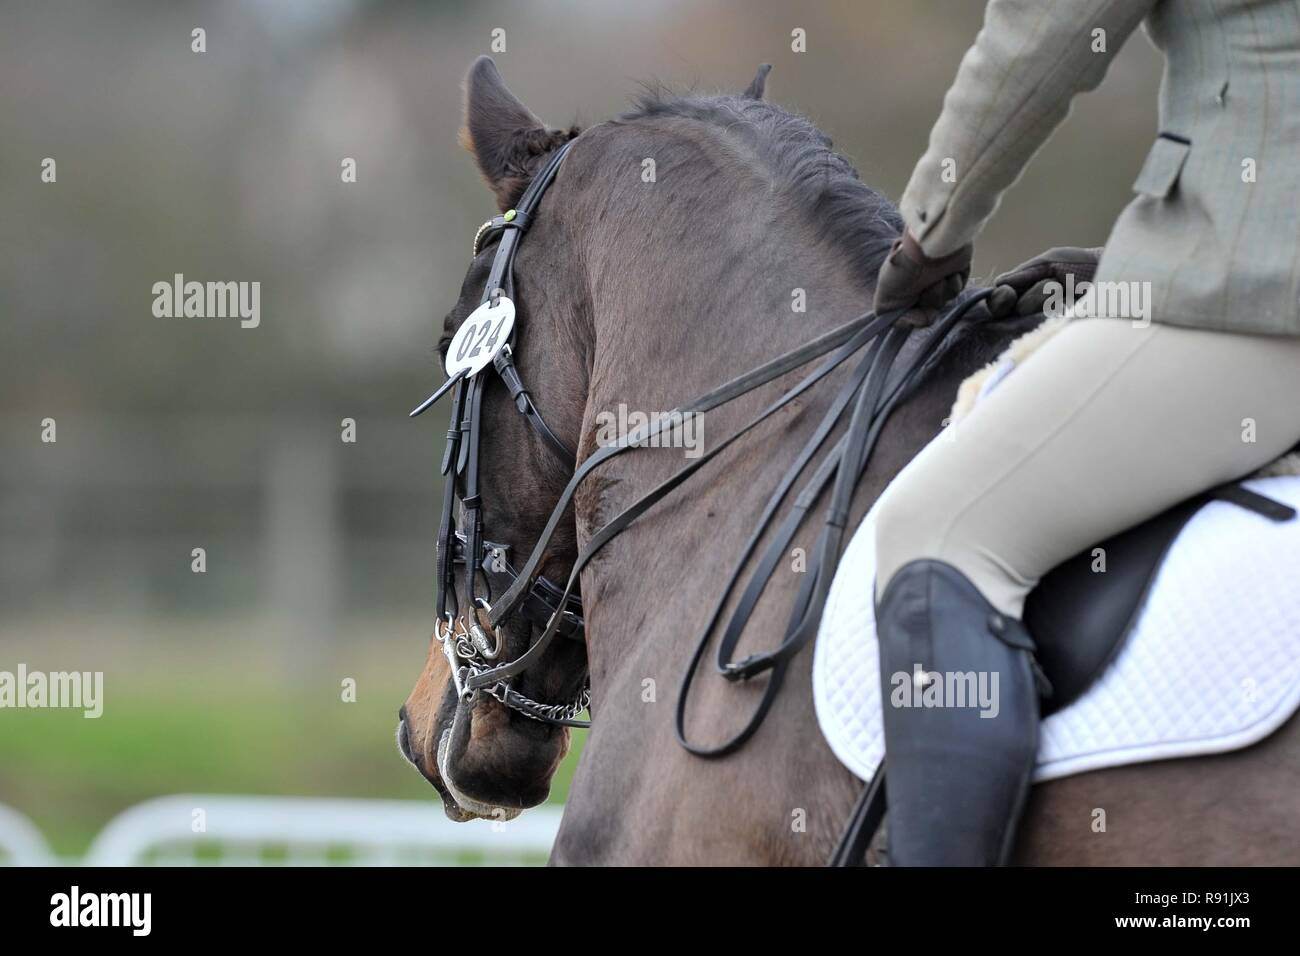 Dark Chestnut Dressage Horse Bridle Numbers 24 Dressage Horse Abstracts 08 12 2018 Stock Photo Alamy